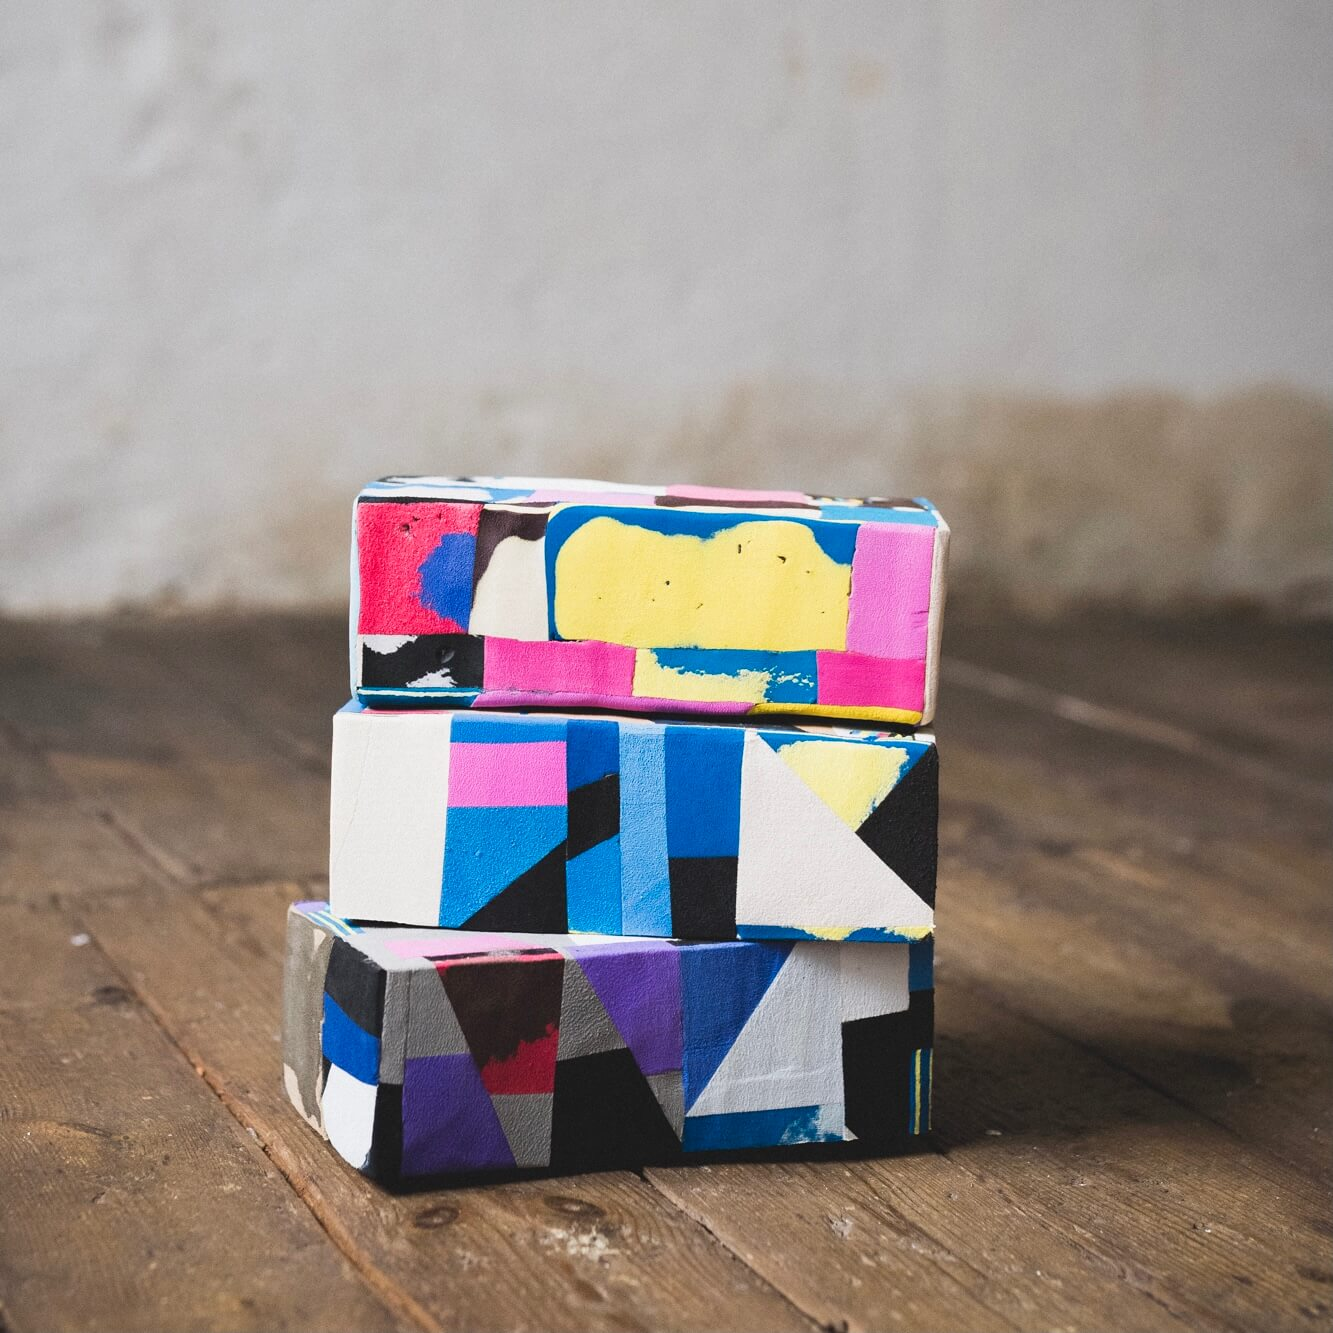 A yoga block made out of flip-flops